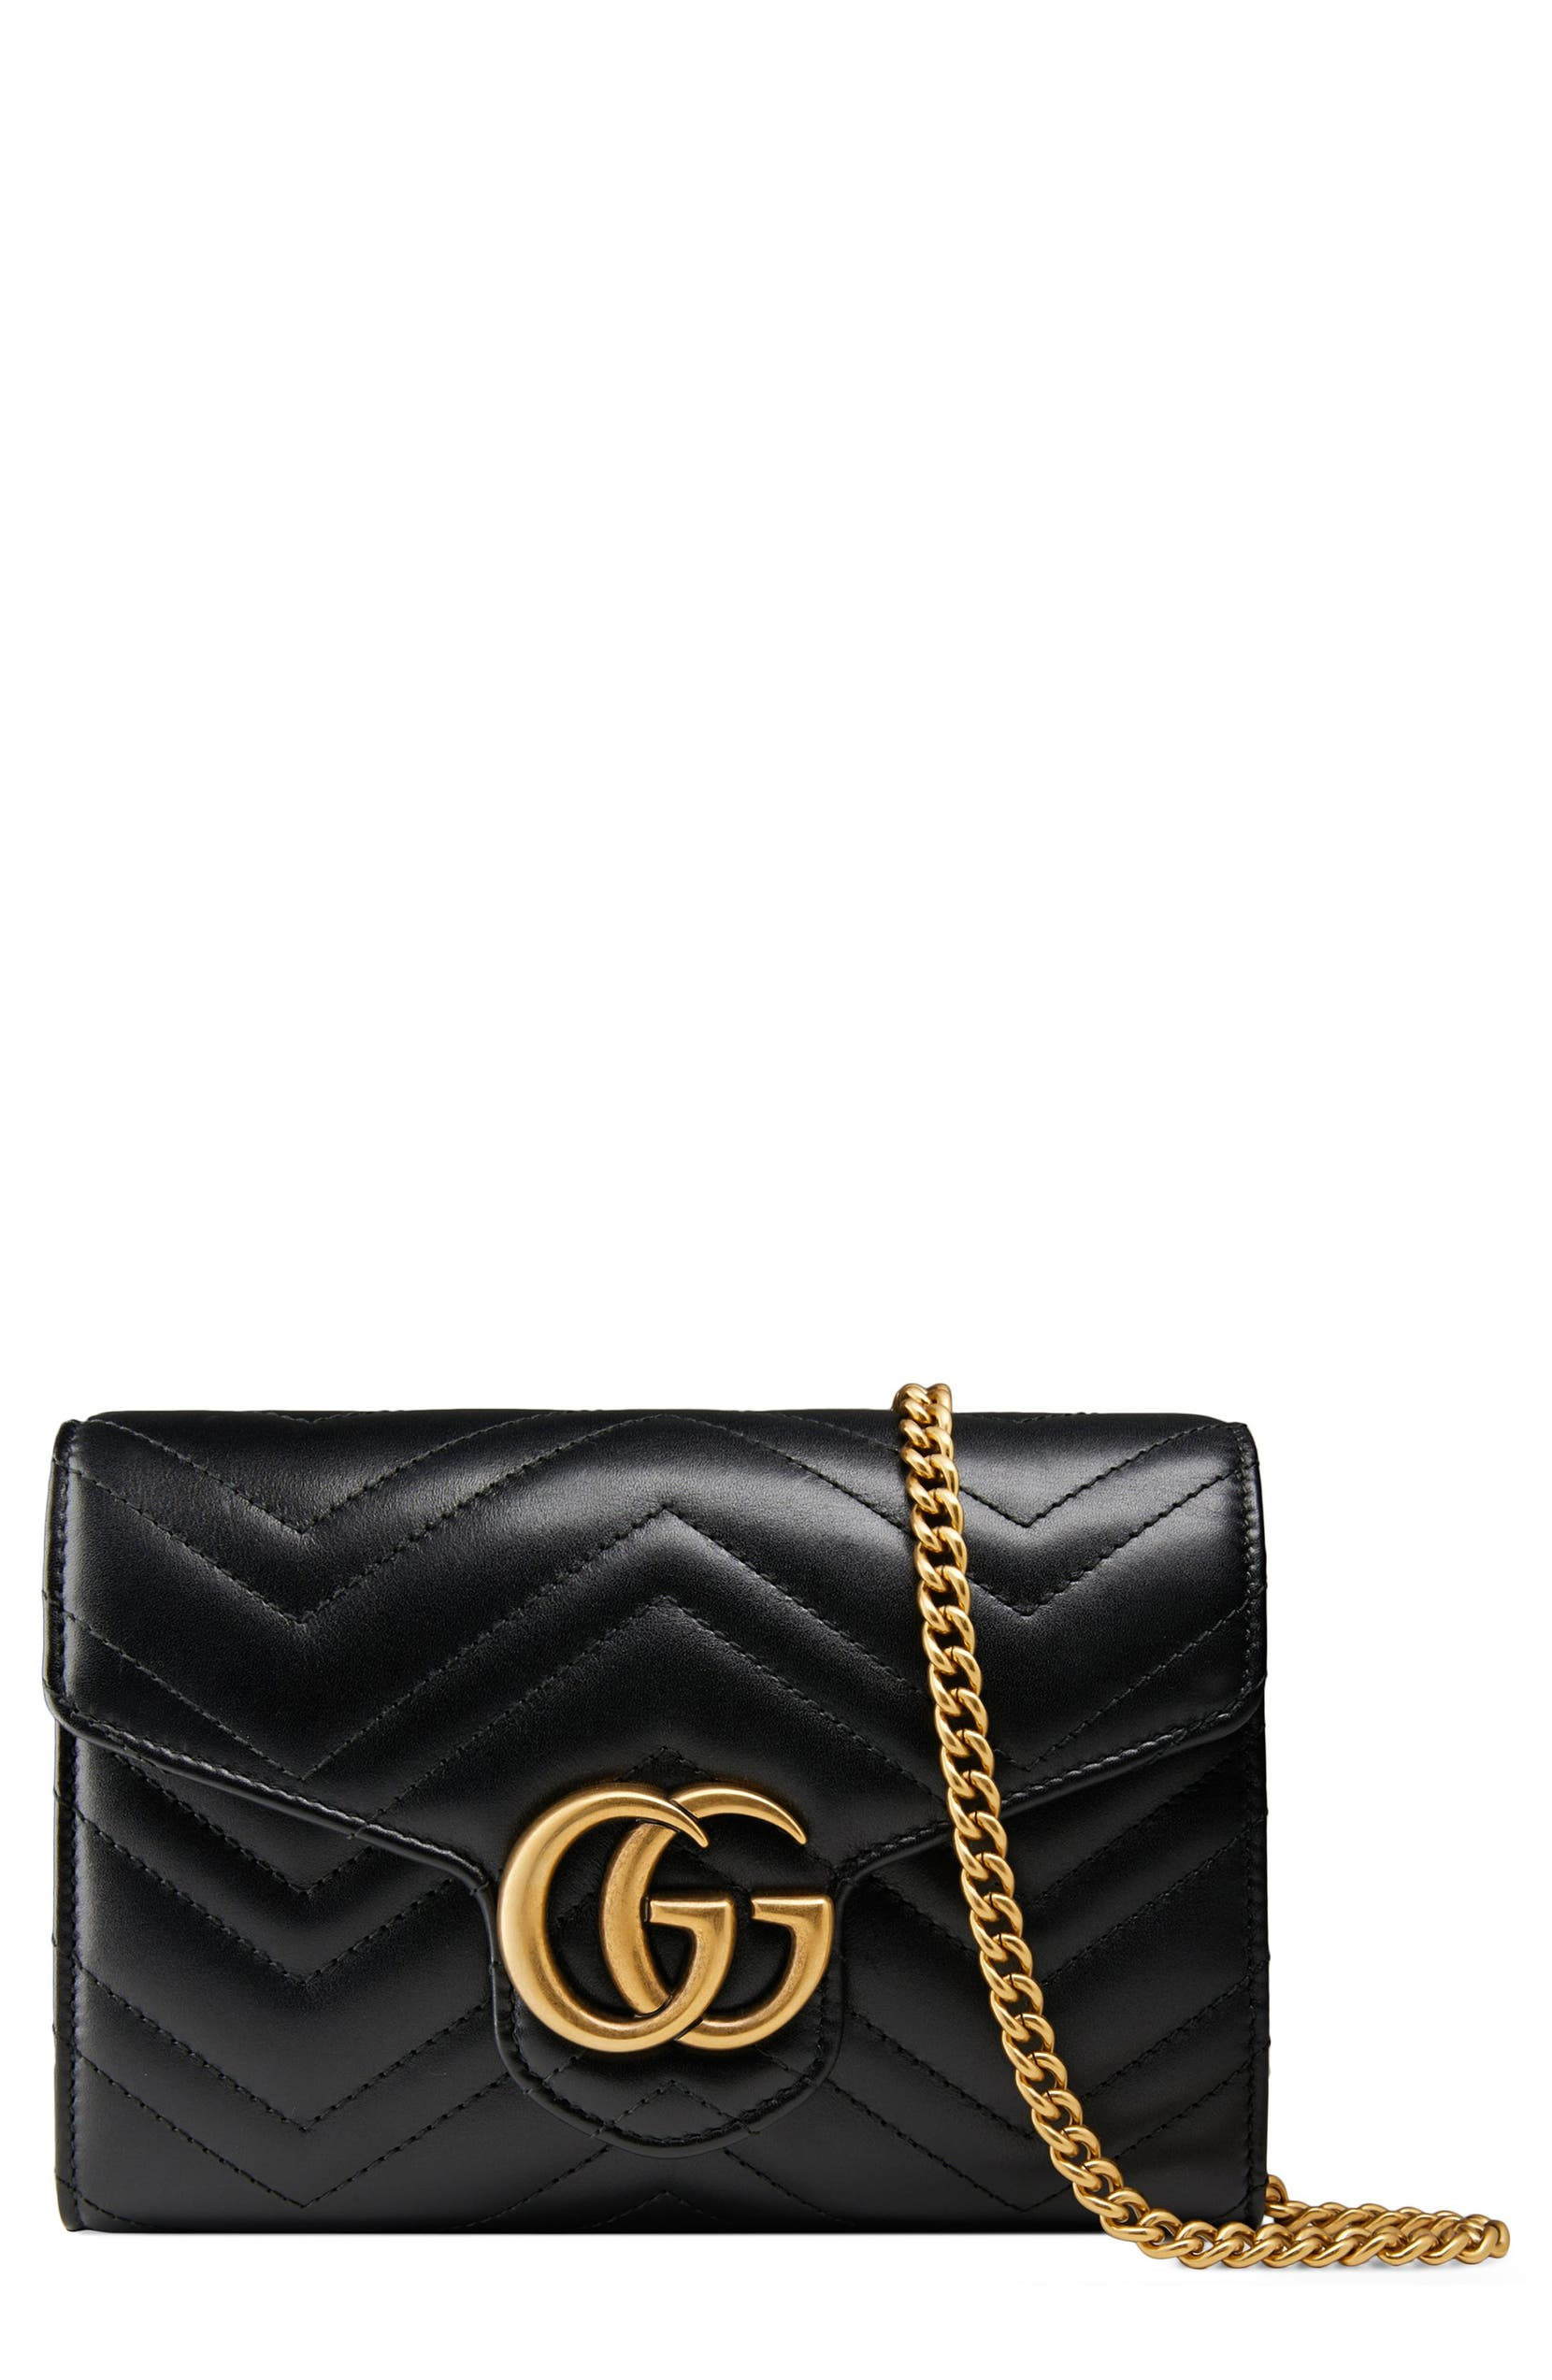 34ddb87d2deeb9 Gucci GG Marmont Matelassé Leather Wallet on a Chain | Nordstrom